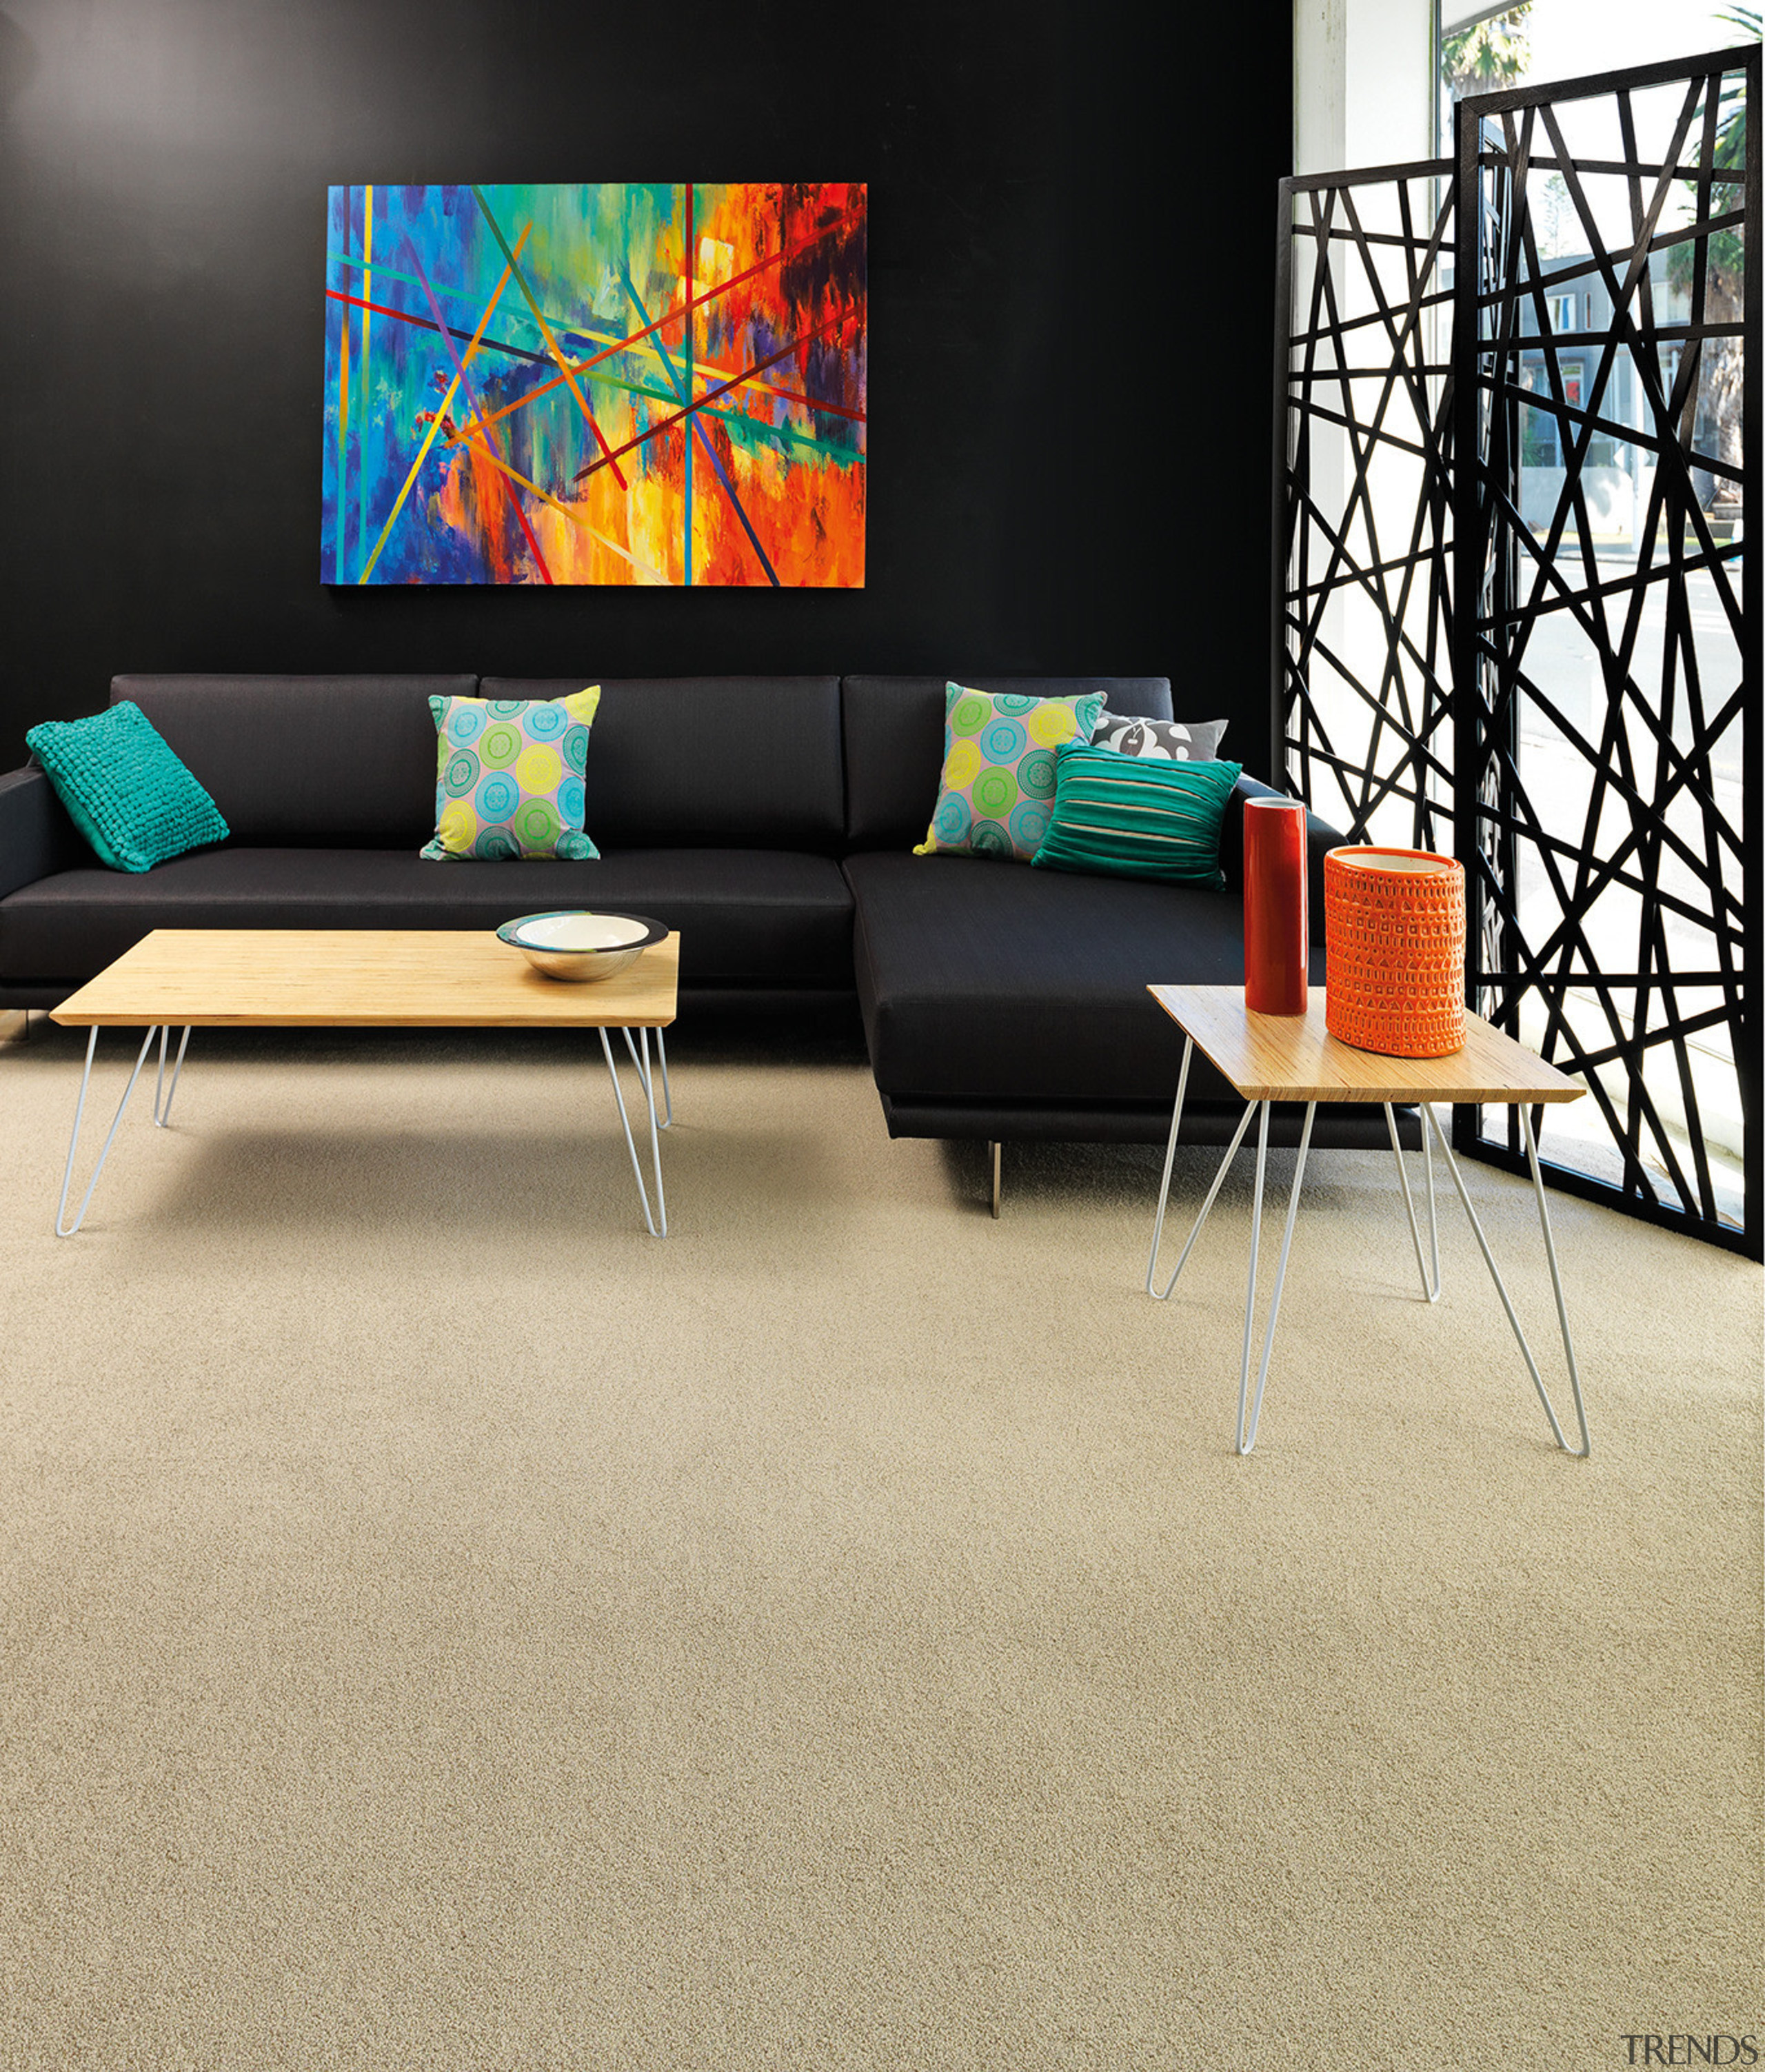 Your new carpet will generally appear about 20% carpet, chair, coffee table, couch, floor, flooring, furniture, hardwood, interior design, laminate flooring, living room, table, wall, wood, wood flooring, orange, black